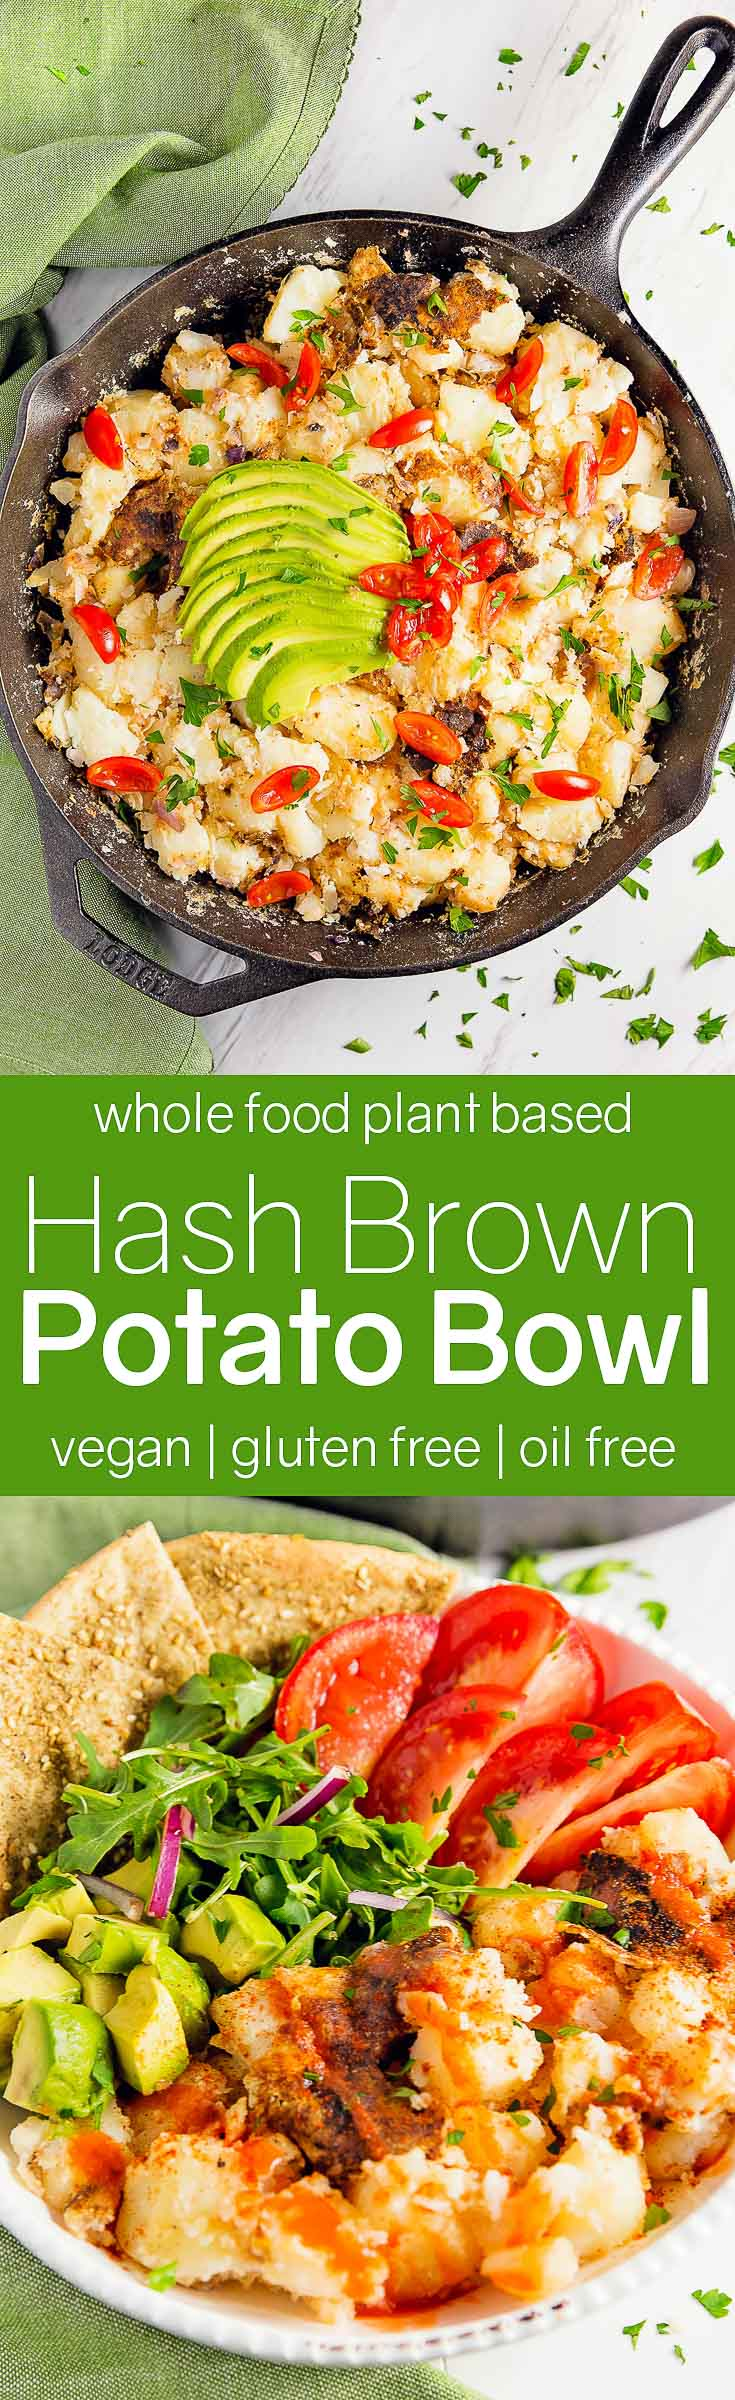 Hash Brown Potato Bowl, vegan, vegetarian, whole food plant based, gluten free, recipe, wfpb, healthy, oil free, no refined sugar, no oil, refined sugar free, dinner, side, side dish, dairy free, dinner party, entertaining